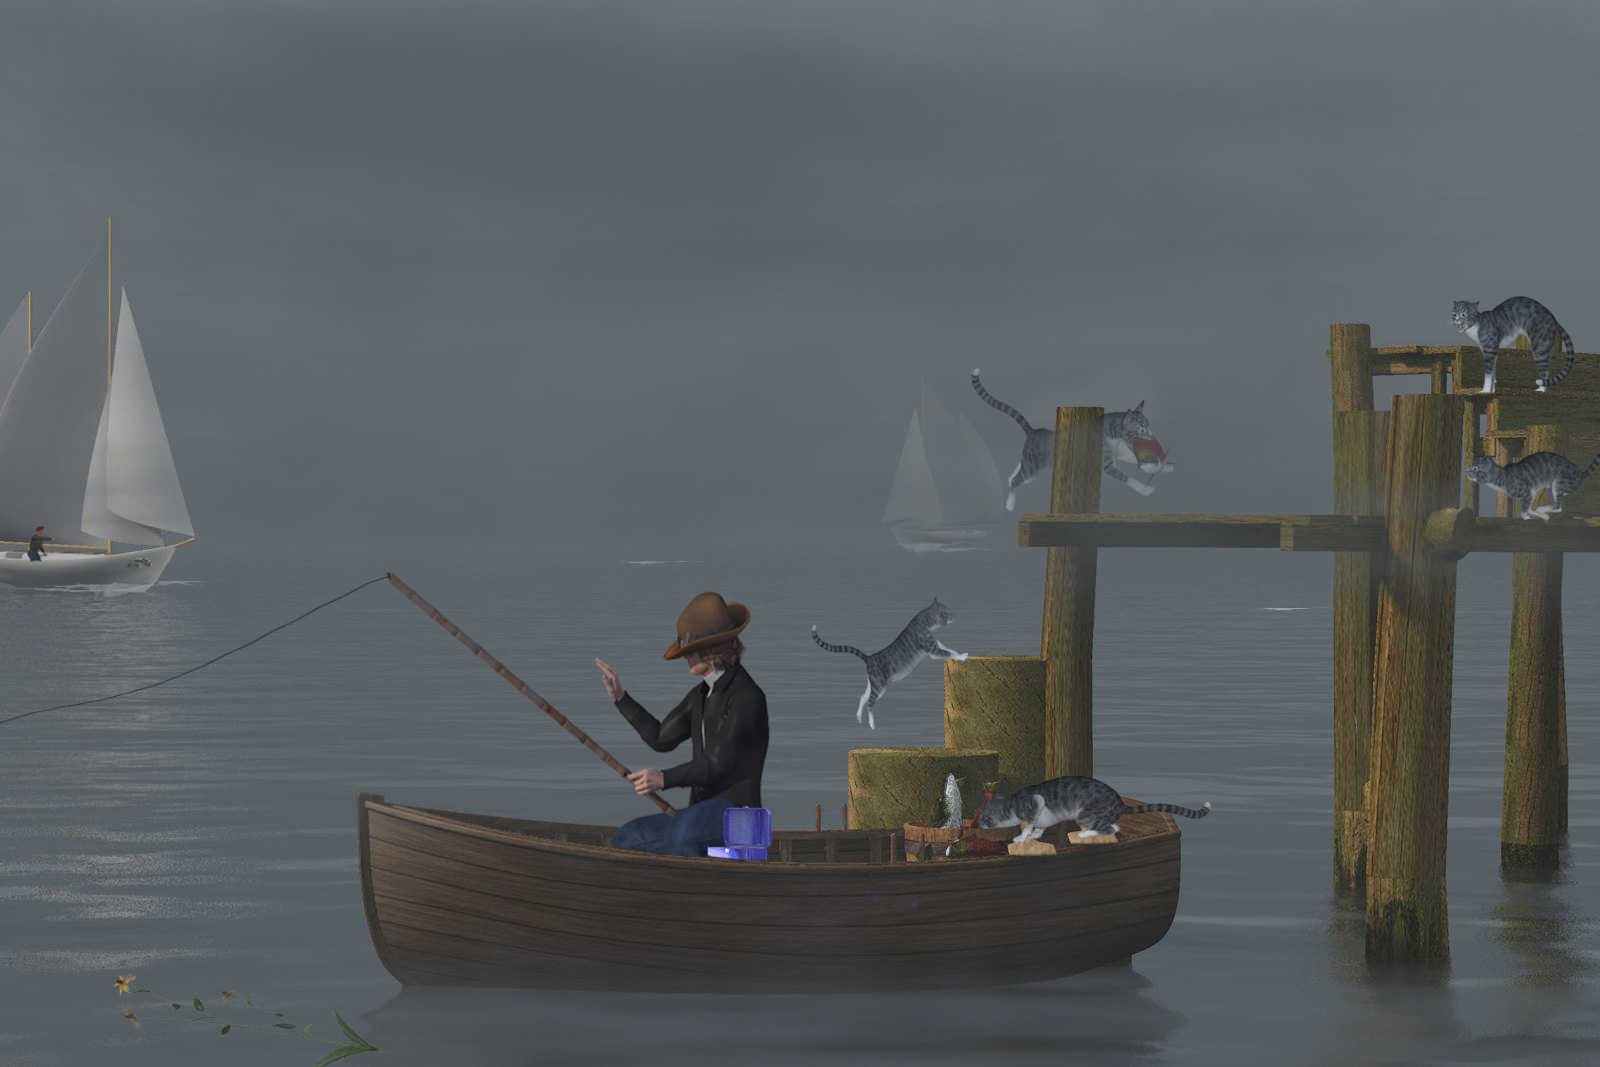 goin'-fishing9the-thief)-4-.jpg